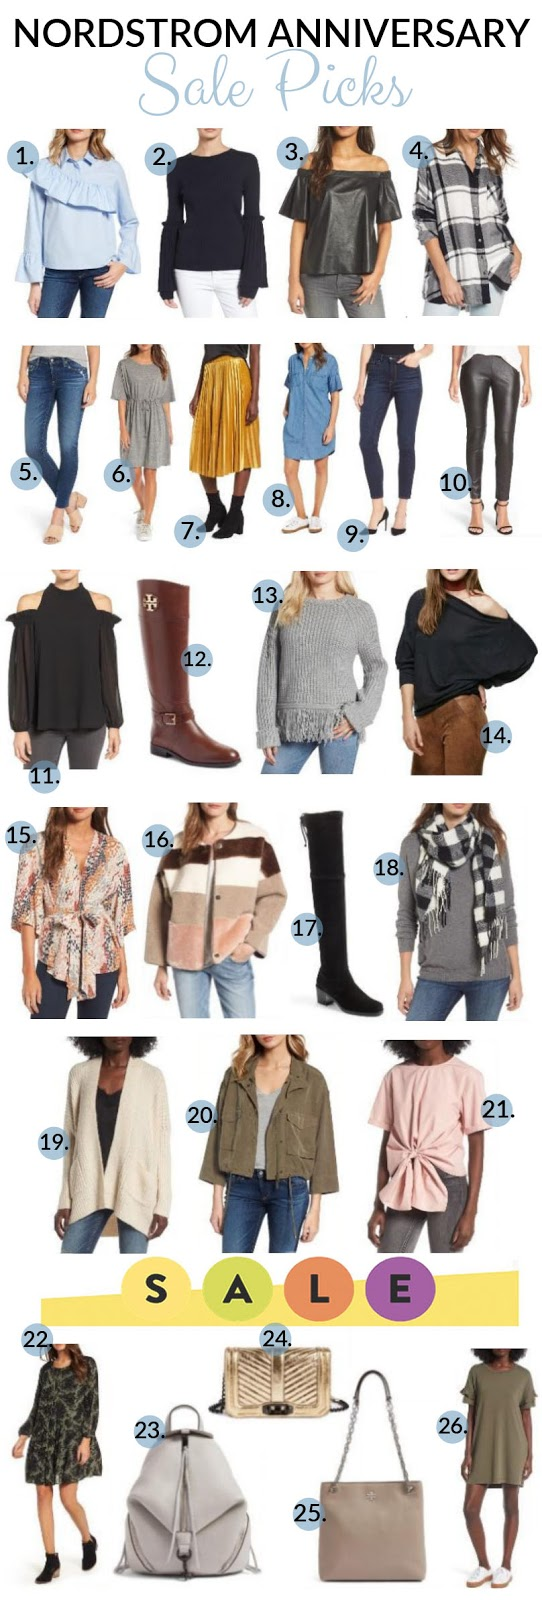 Nordstrom Anniversary Sale Early Access Shopping Guide by fashion blogger Laura of Walking in Memphis in High Heels